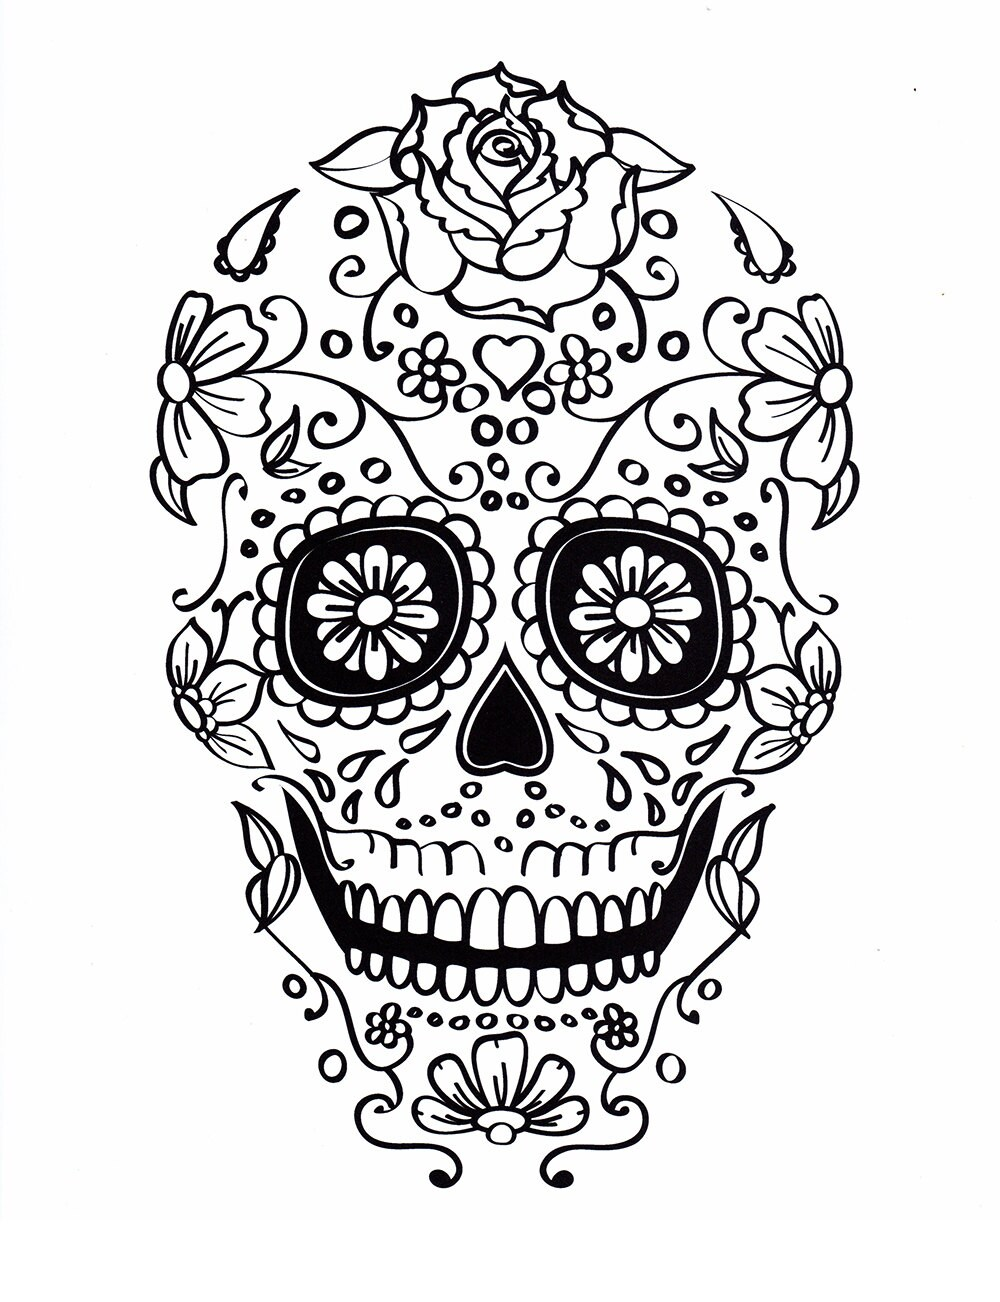 This is an image of Persnickety Printable Sugar Skull Coloring Pages